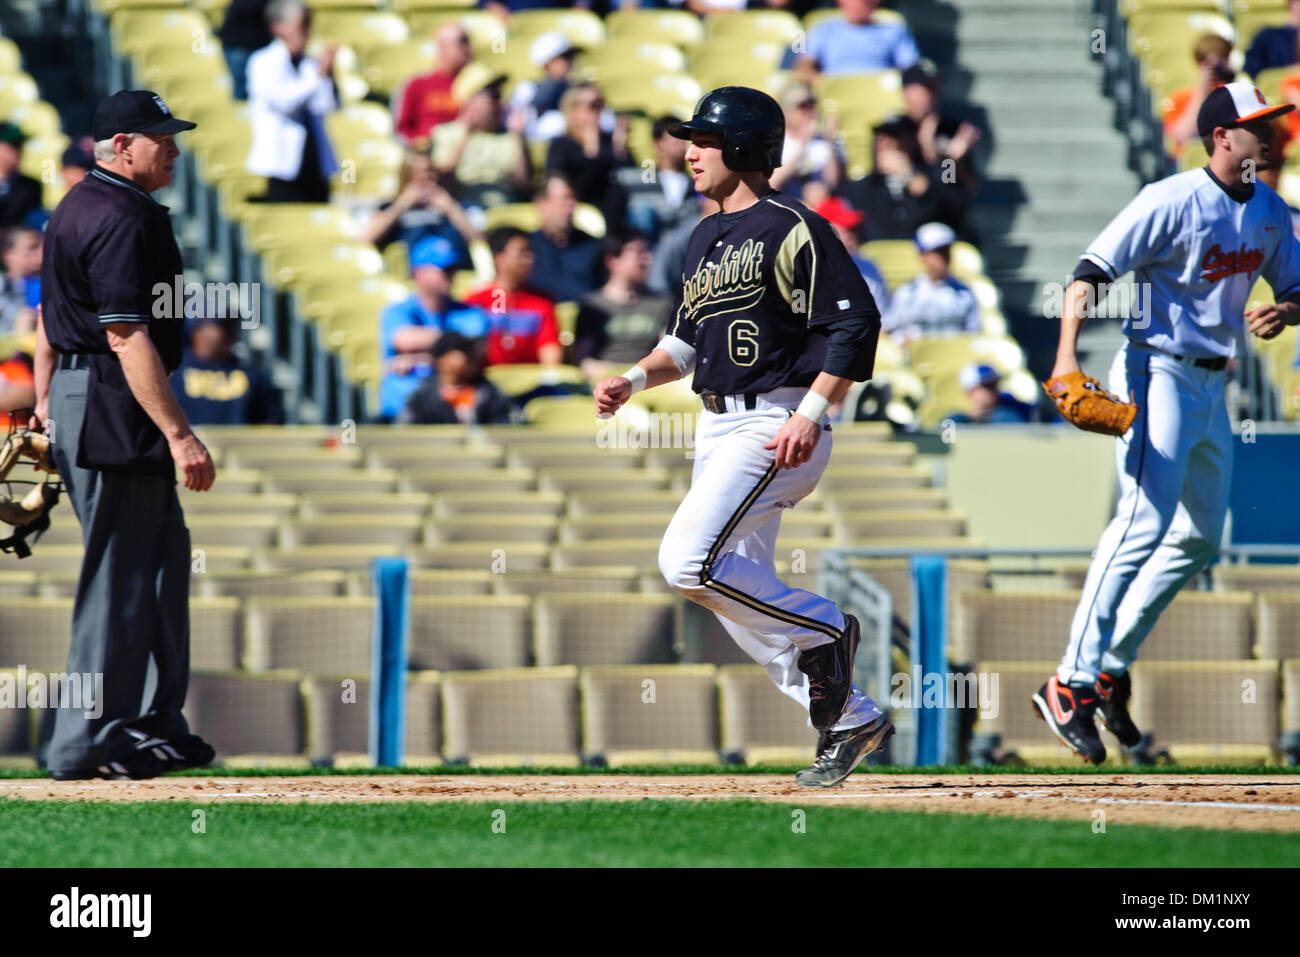 Feb. 28, 2010 - Los Angeles, California, U.S - 28 February 2010:  Vanderbilt's Brian Harris (6) steps on home to Stock Photo